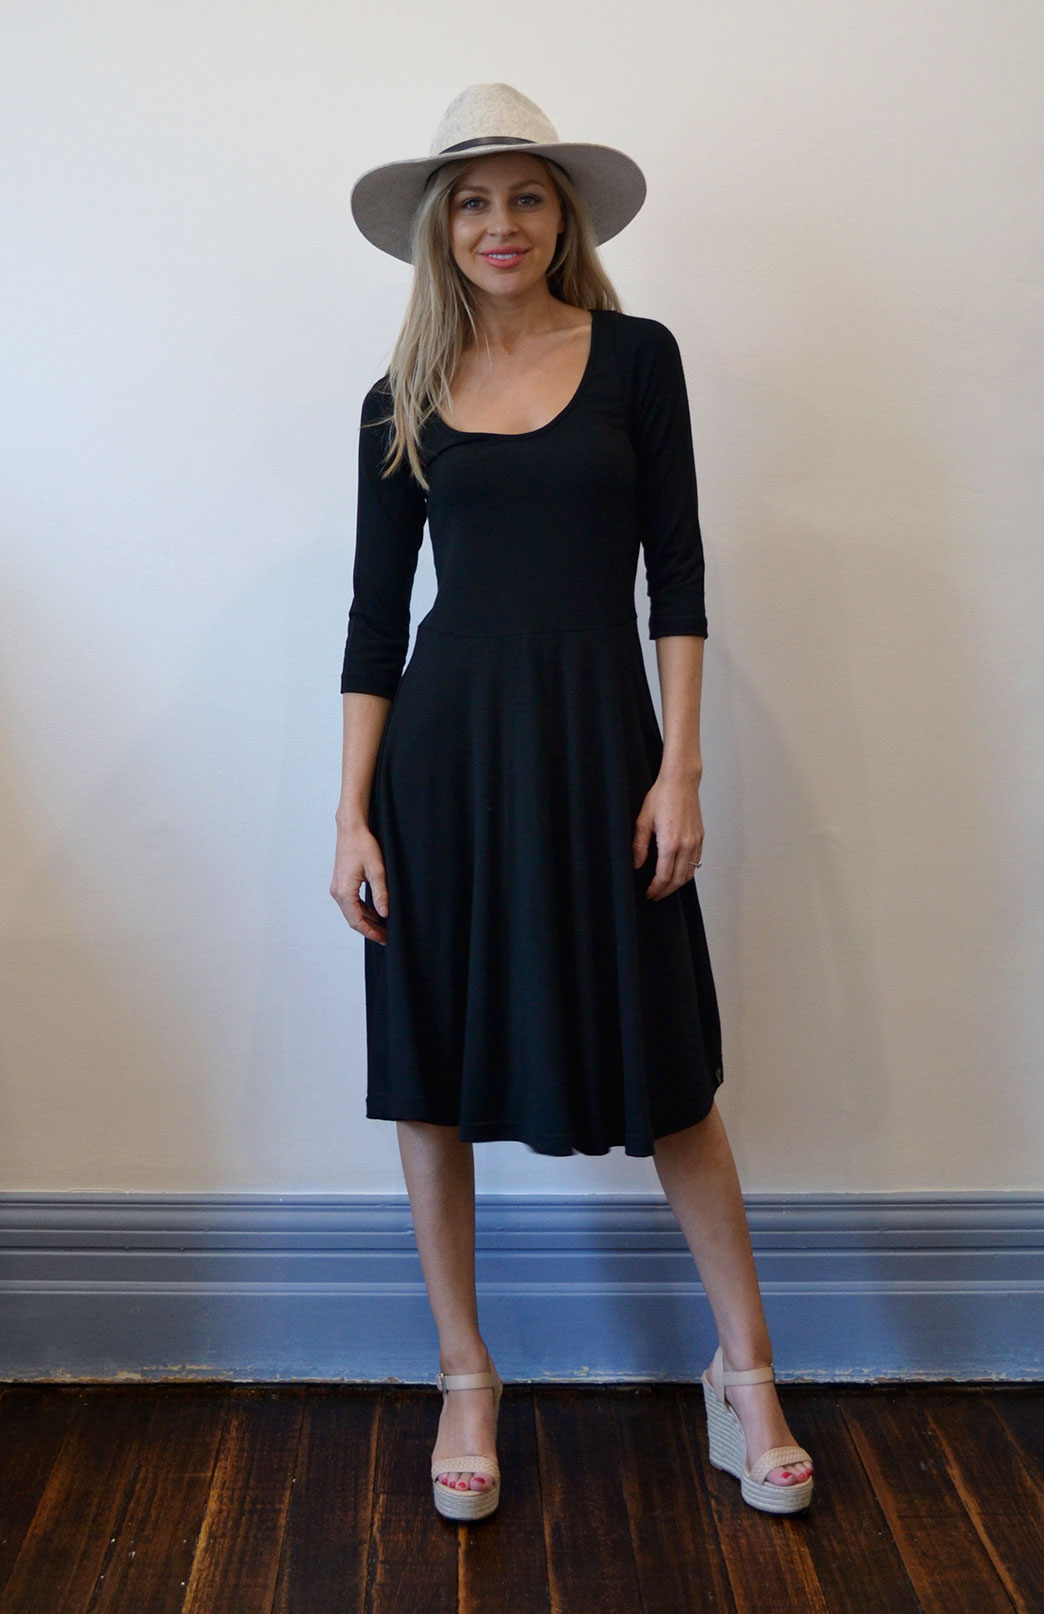 3/4 Jackie Dress - Women's Black Merino Wool 3/4 Sleeve Jackie Dress - Smitten Merino Tasmania Australia